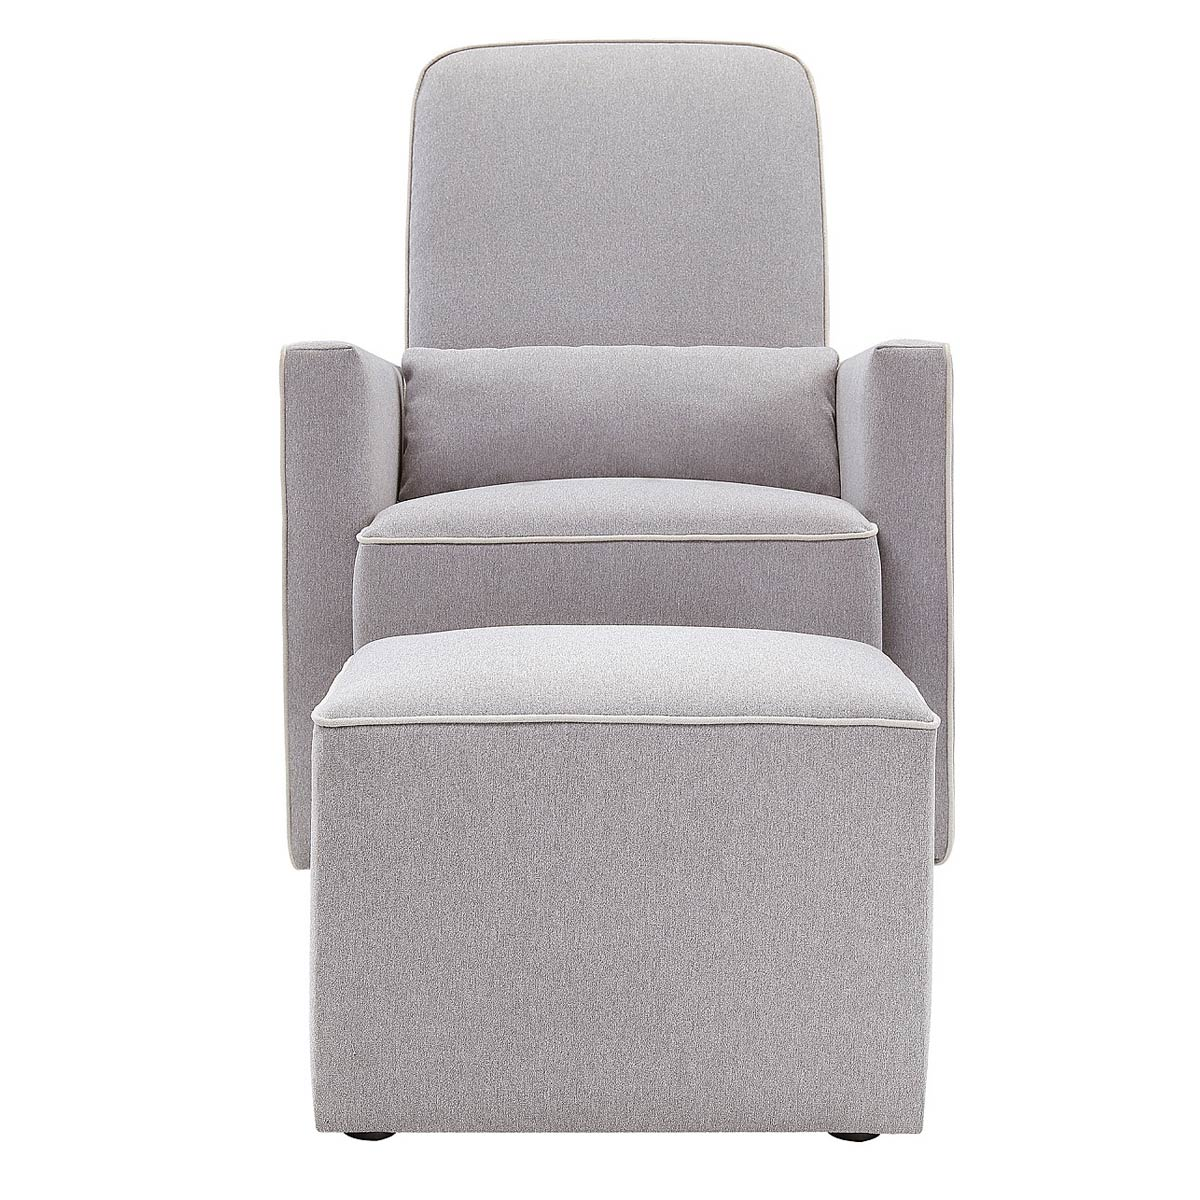 davinci olive upholstered swivel glider with bonus ottoman in gray finish with cream piping free shipping